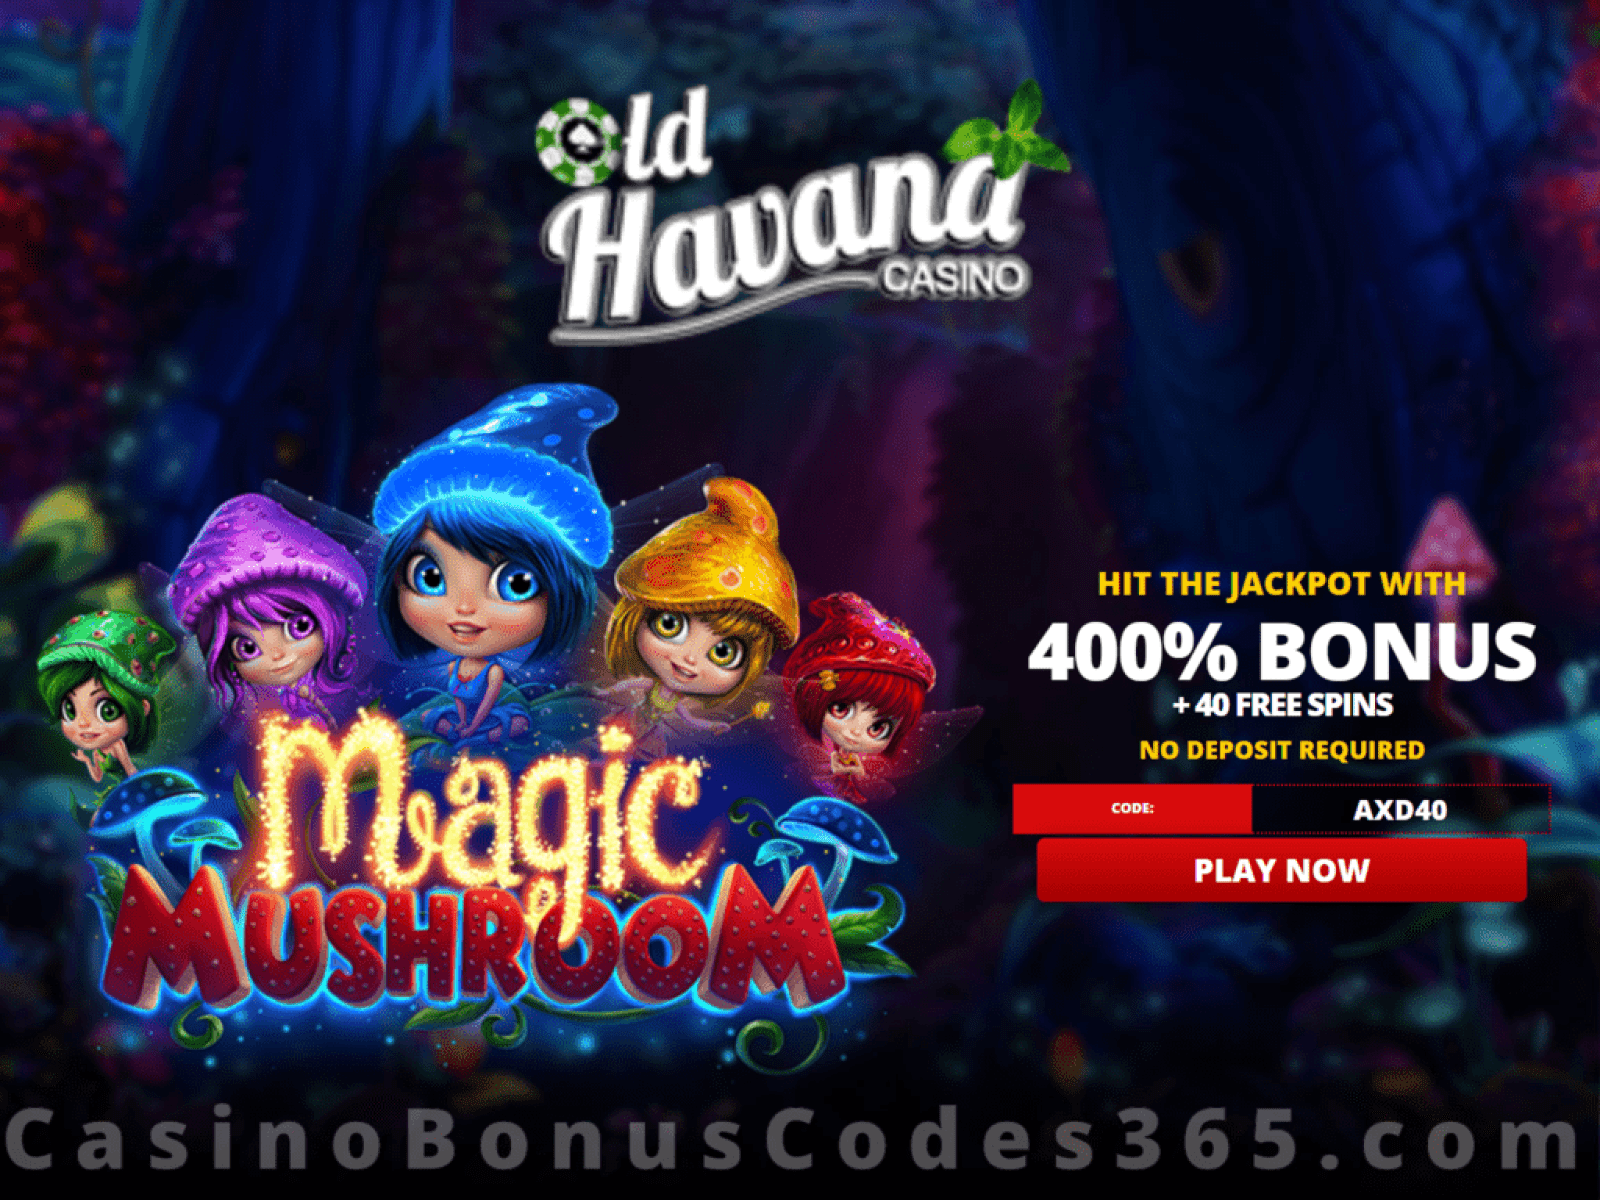 Old Havana Casino 40 FREE Spins on RTG Magic Mushroom Special No Deposit Promo